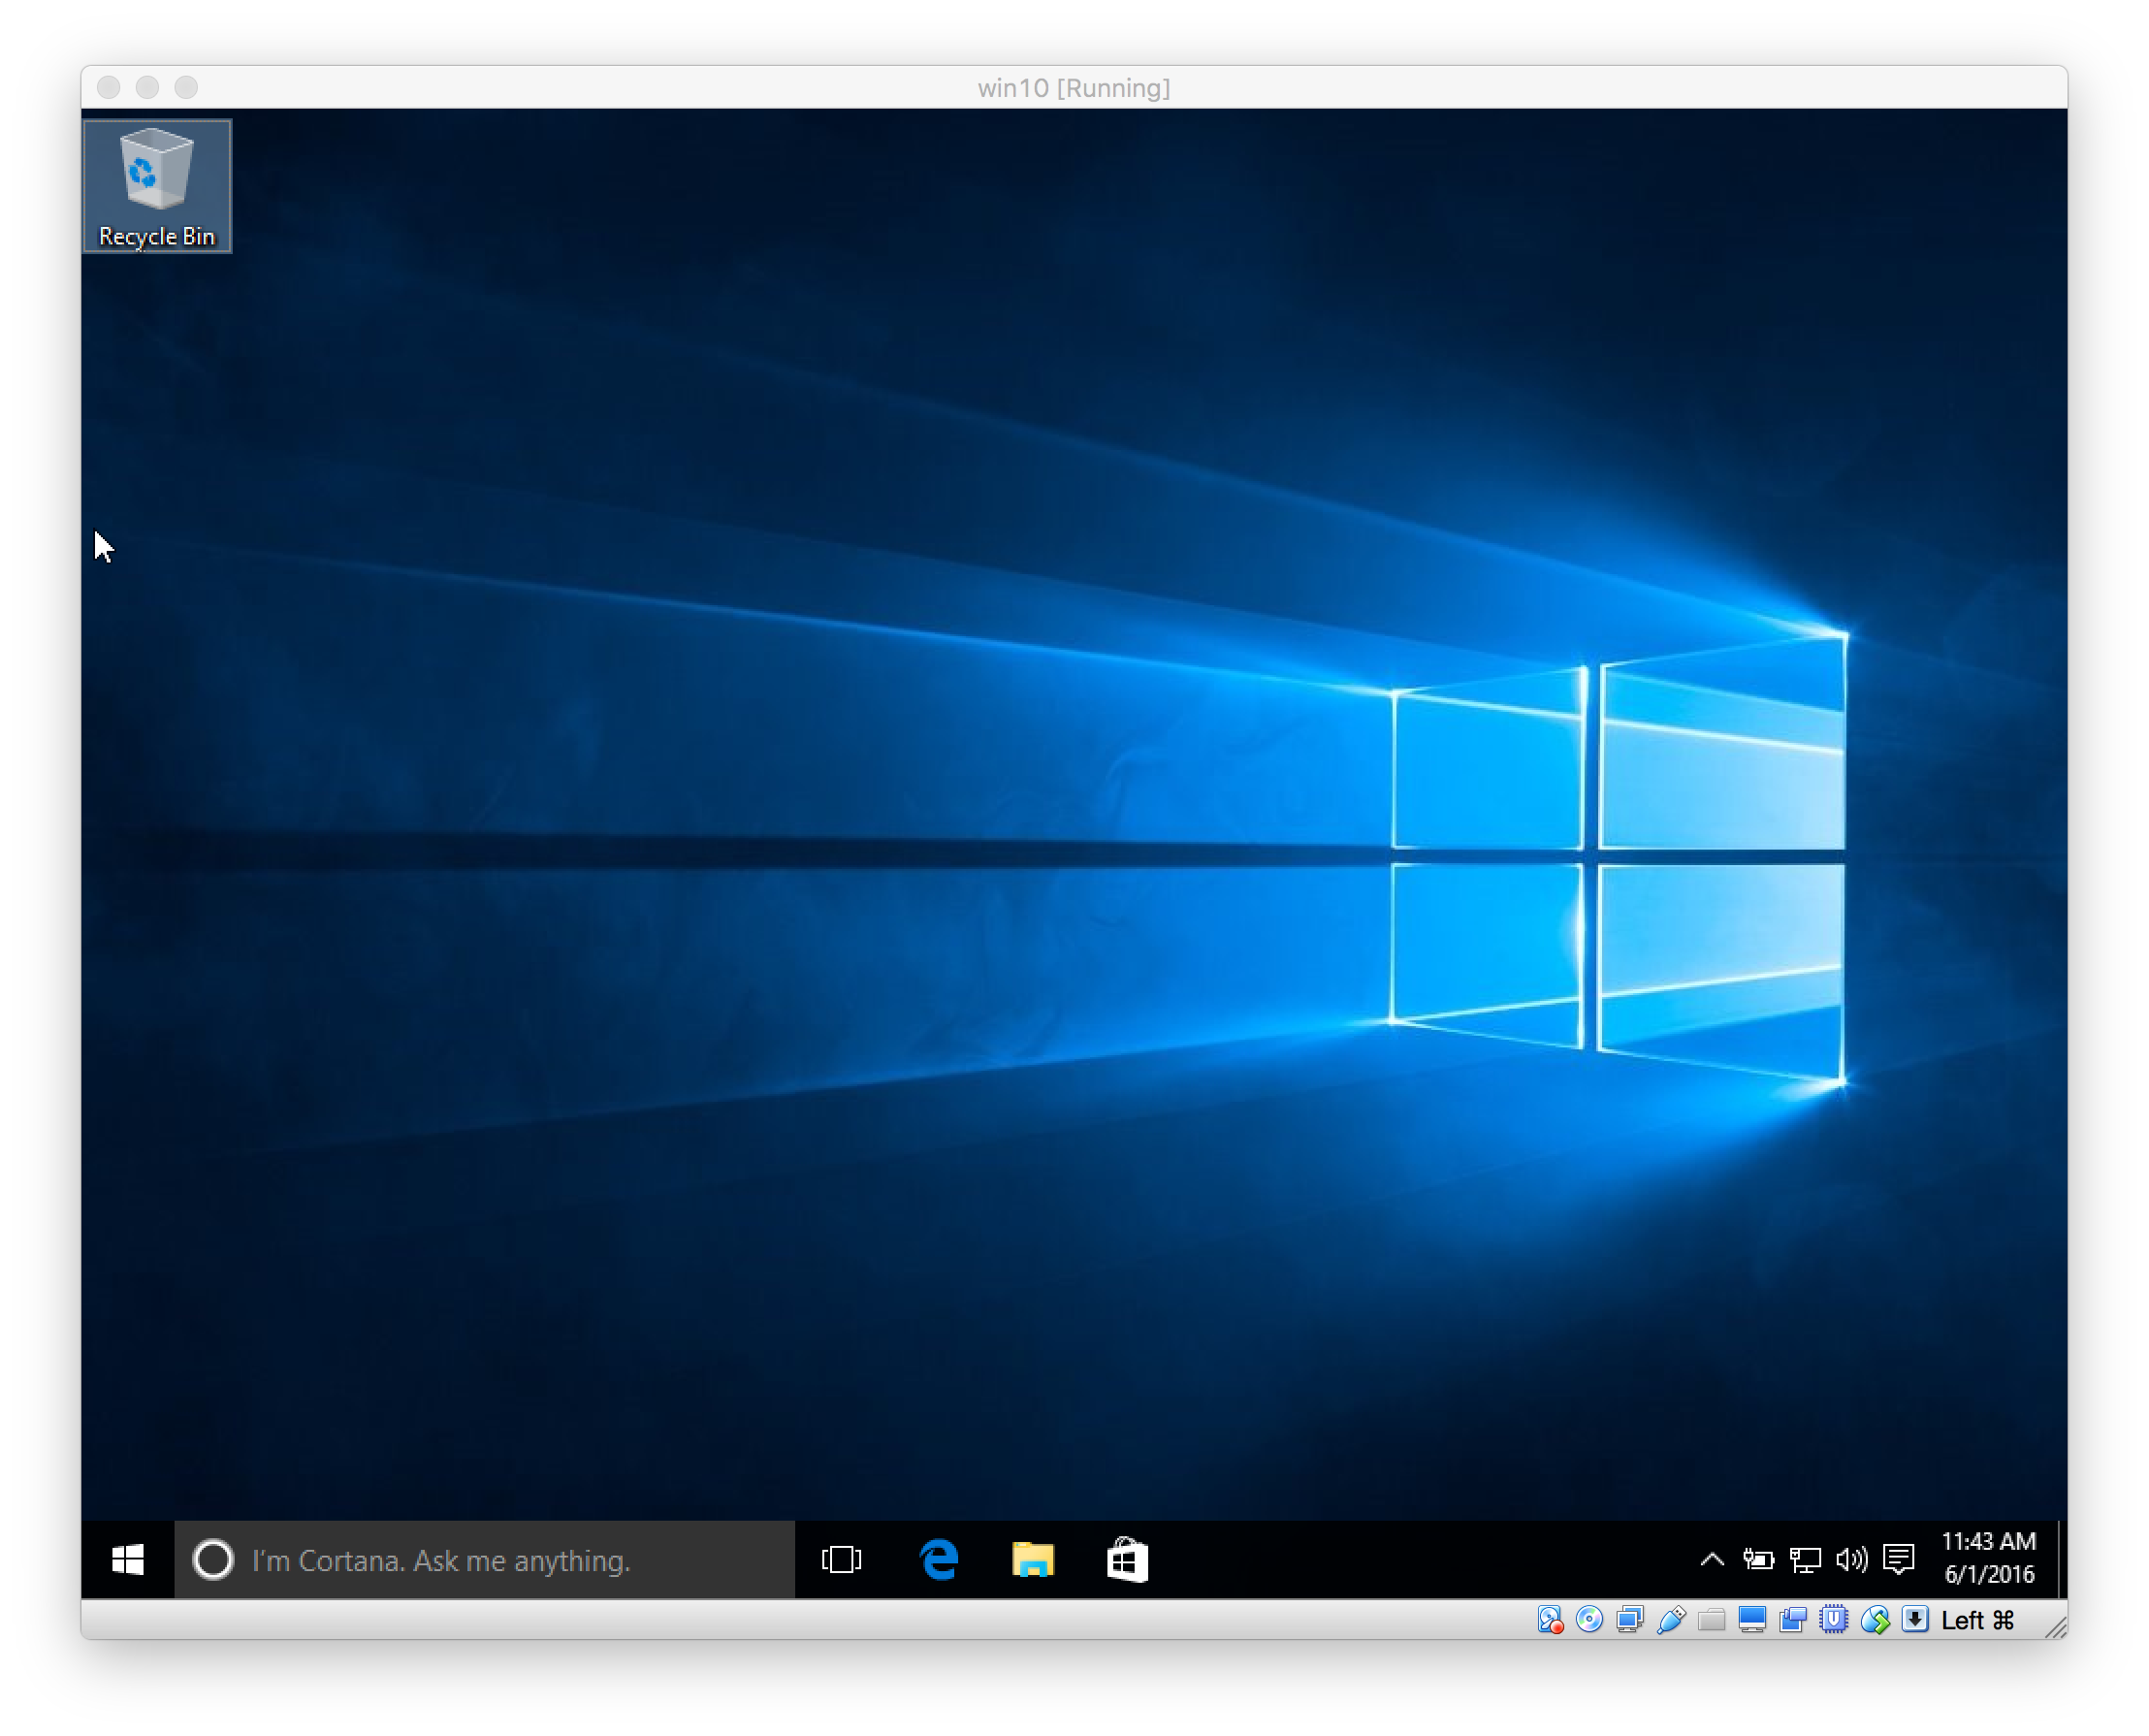 Windows 10 intro screen